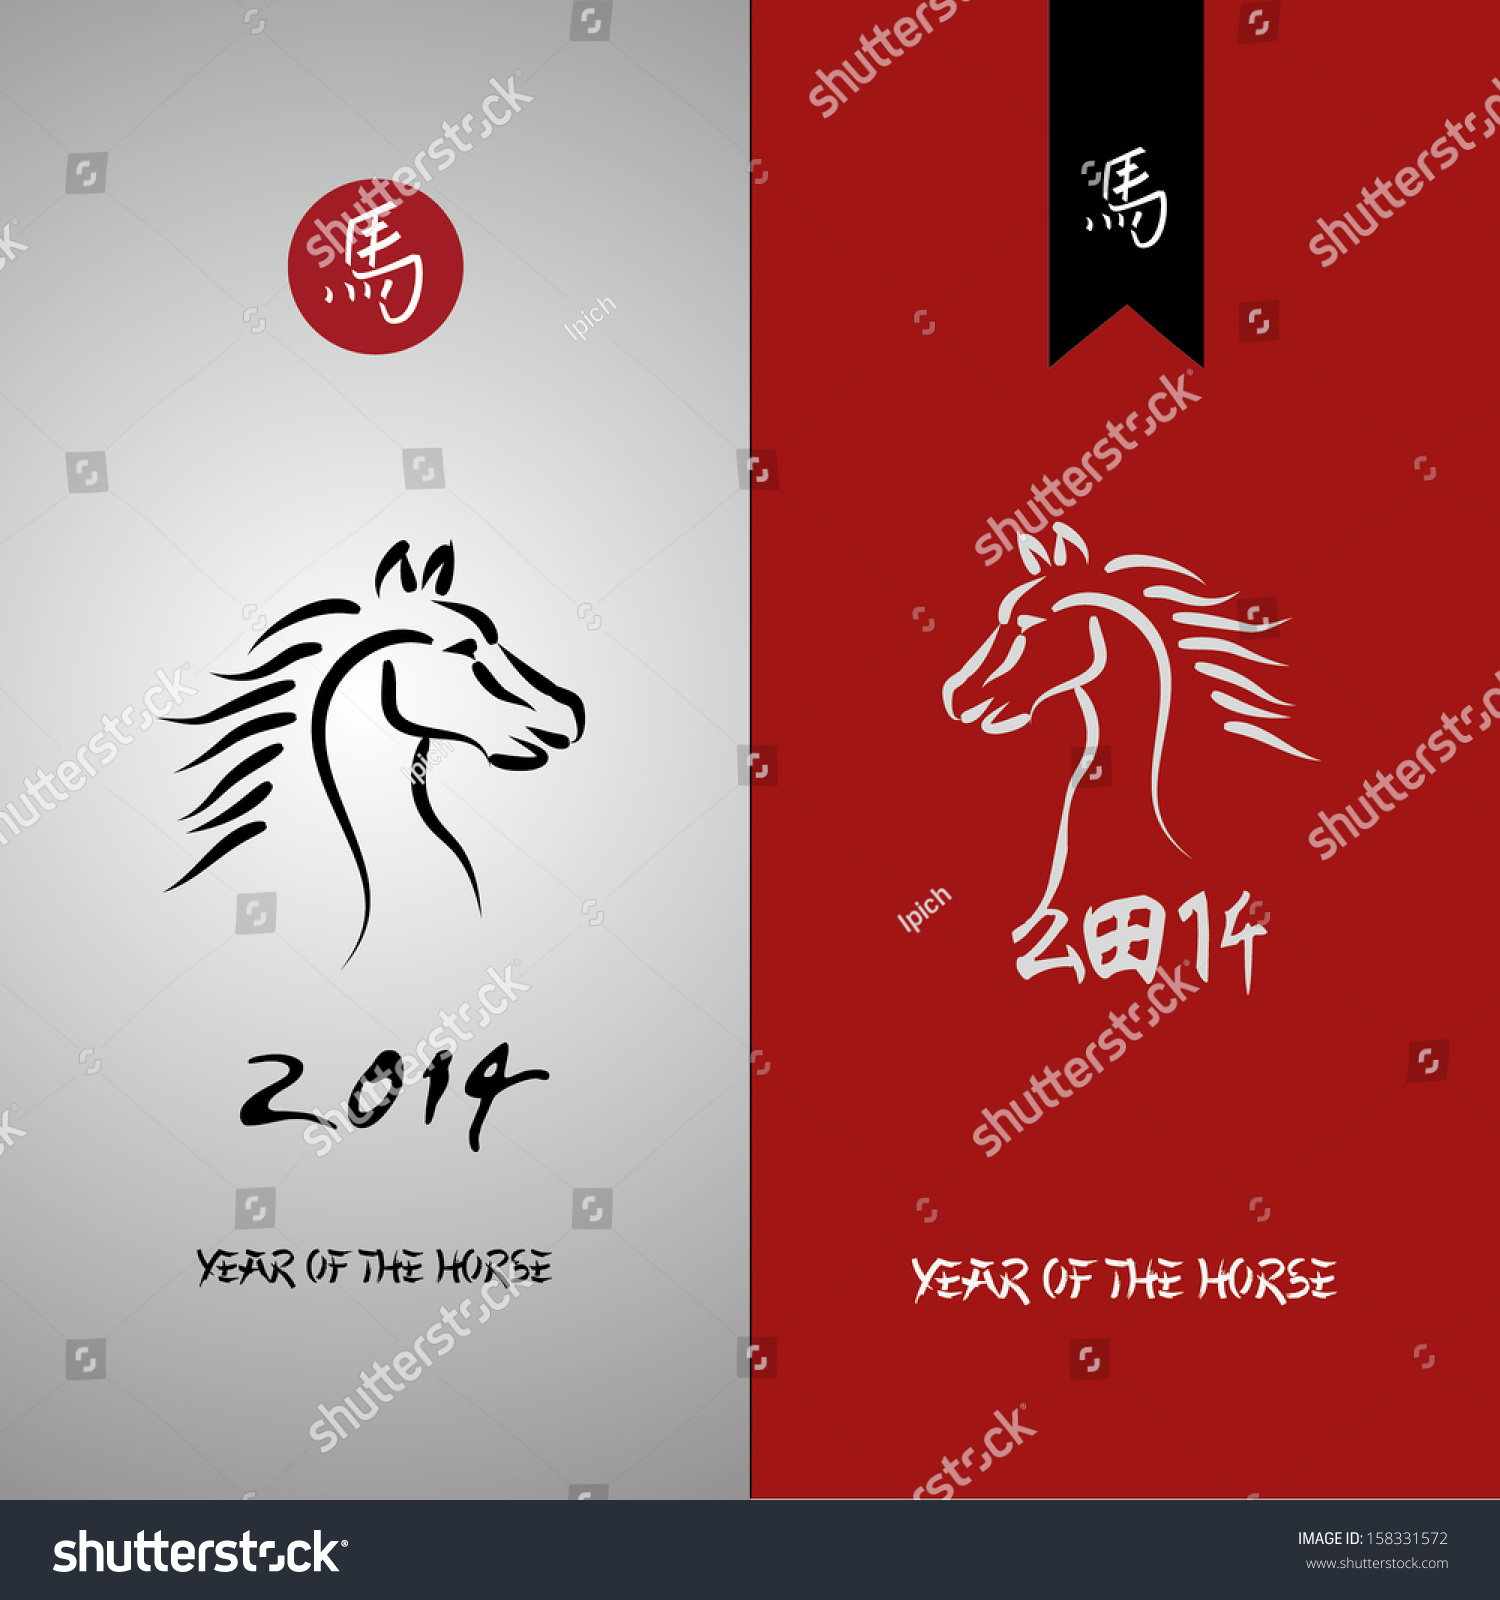 horse calligraphy vector chinese new year 2014 - Chinese New Year 2014